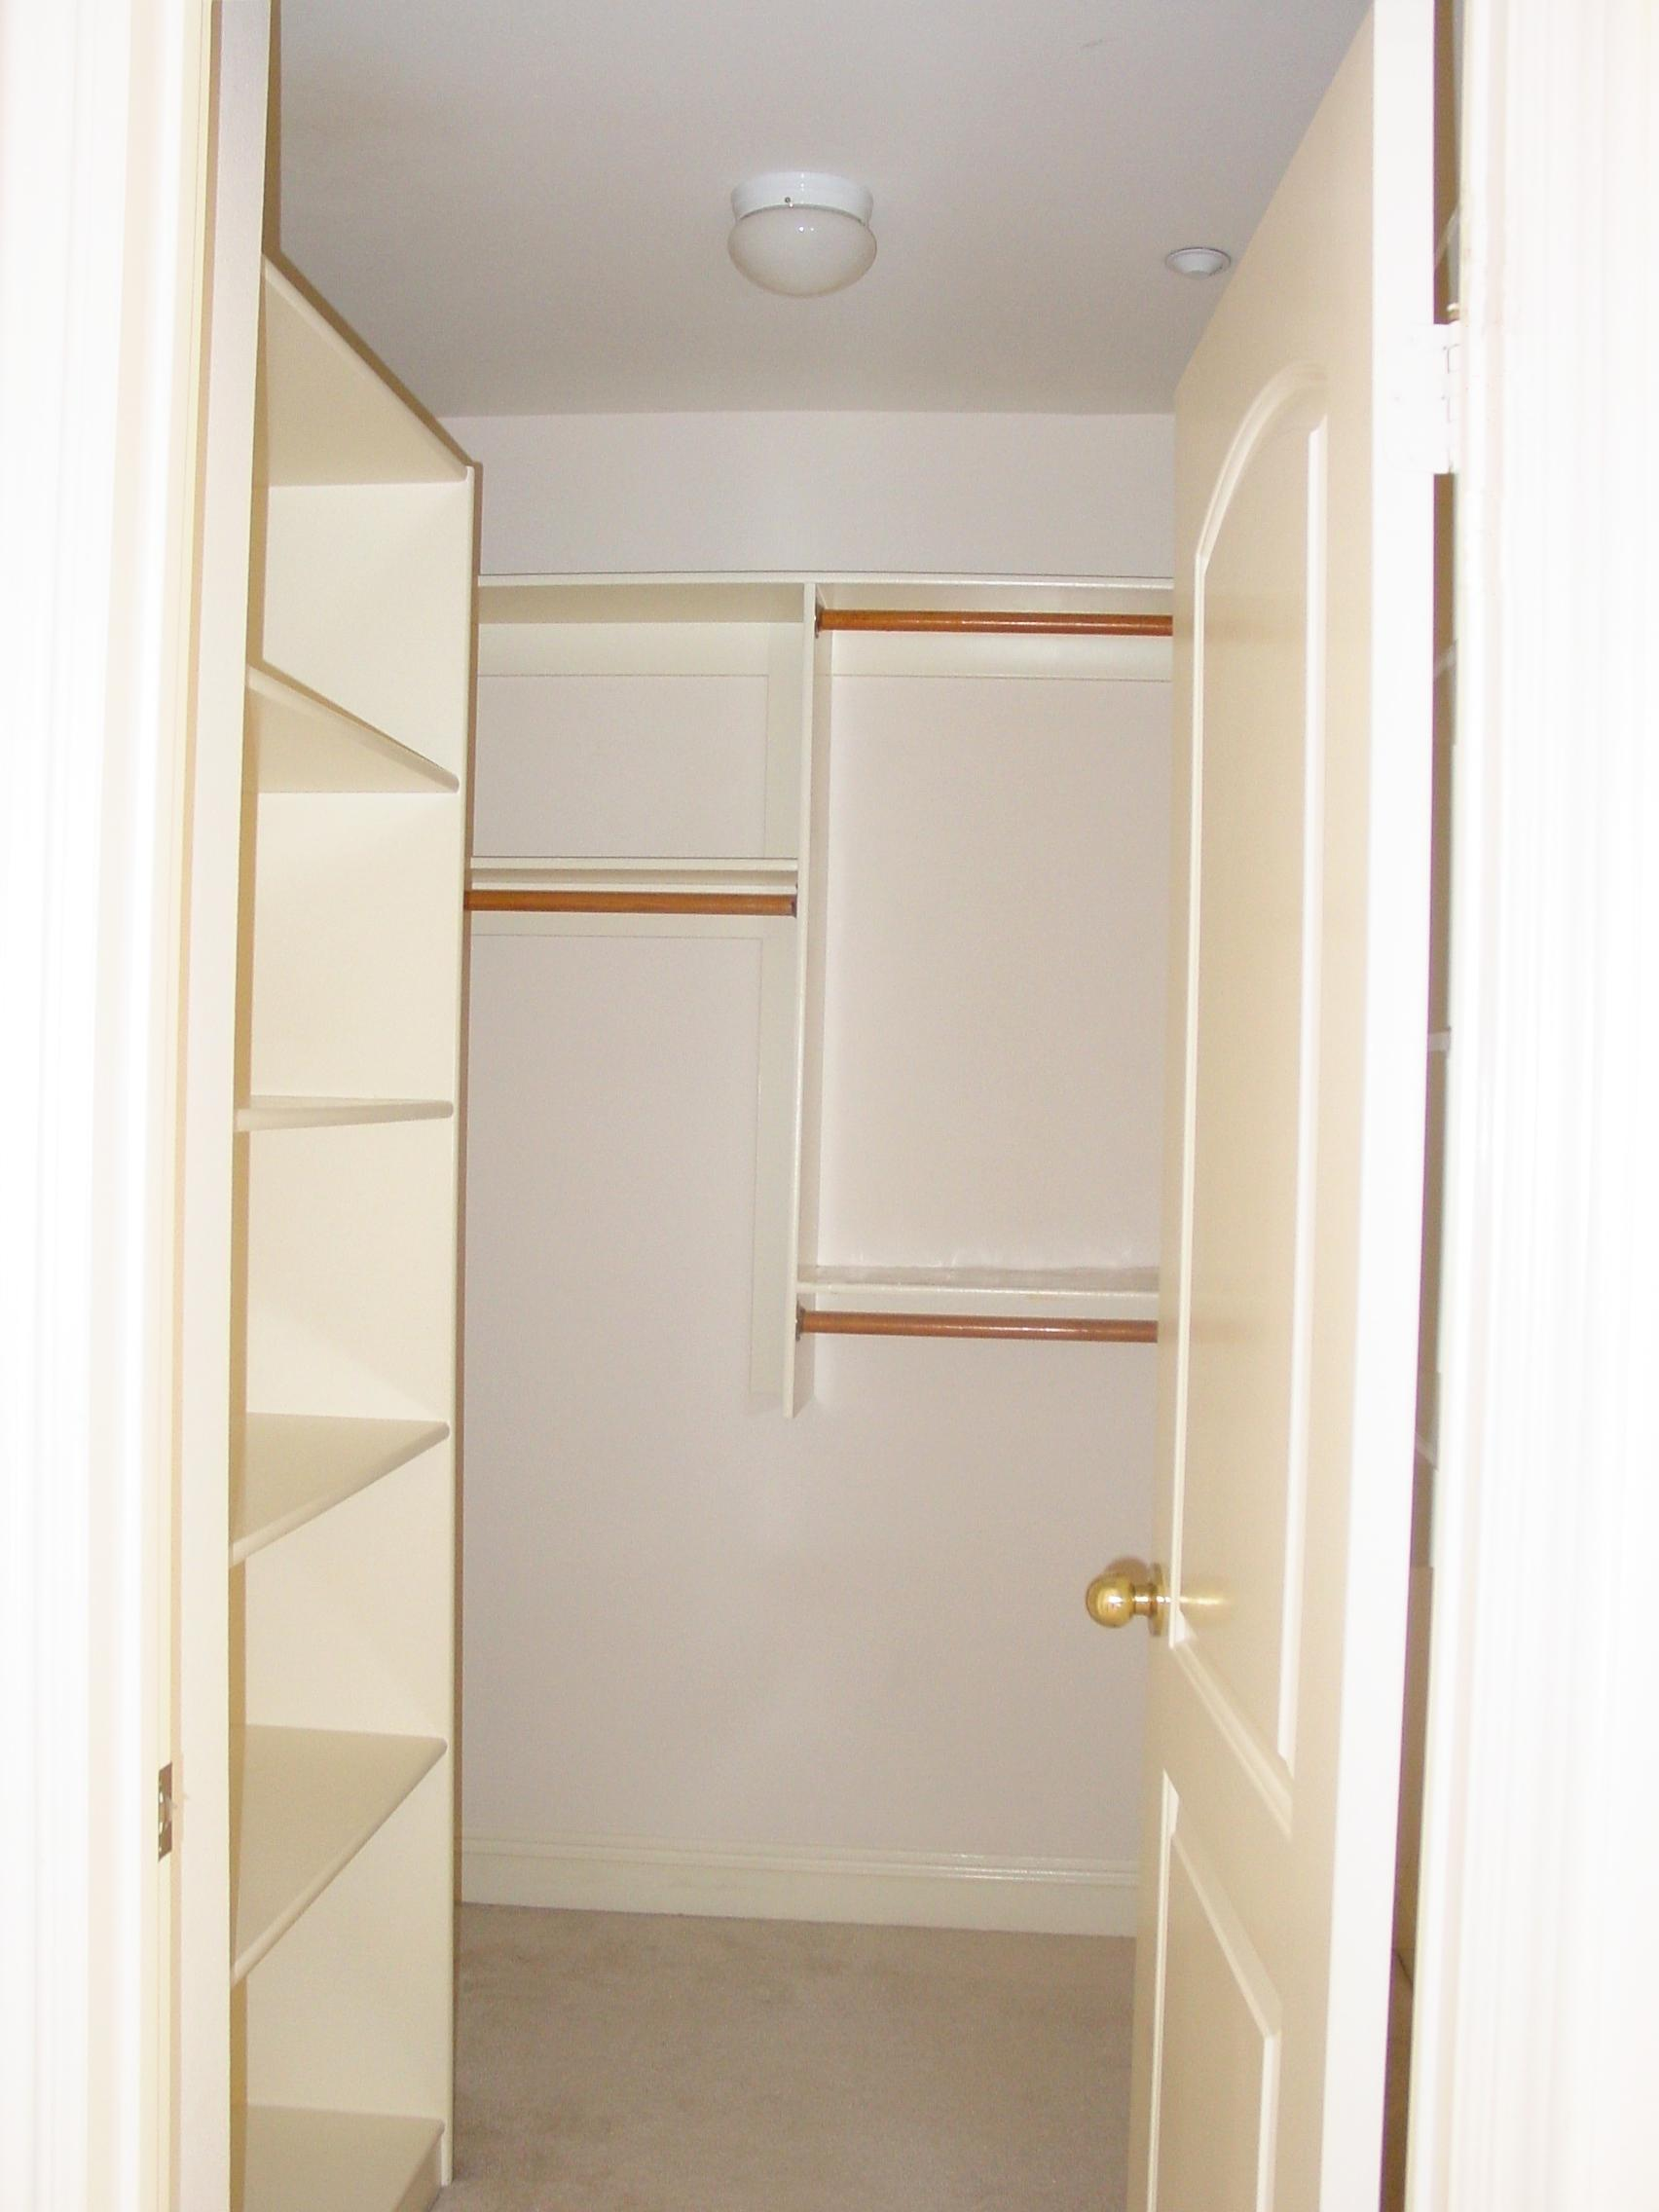 Bedroom master bath walk in closet pictures for Master bathroom designs with walk in closets